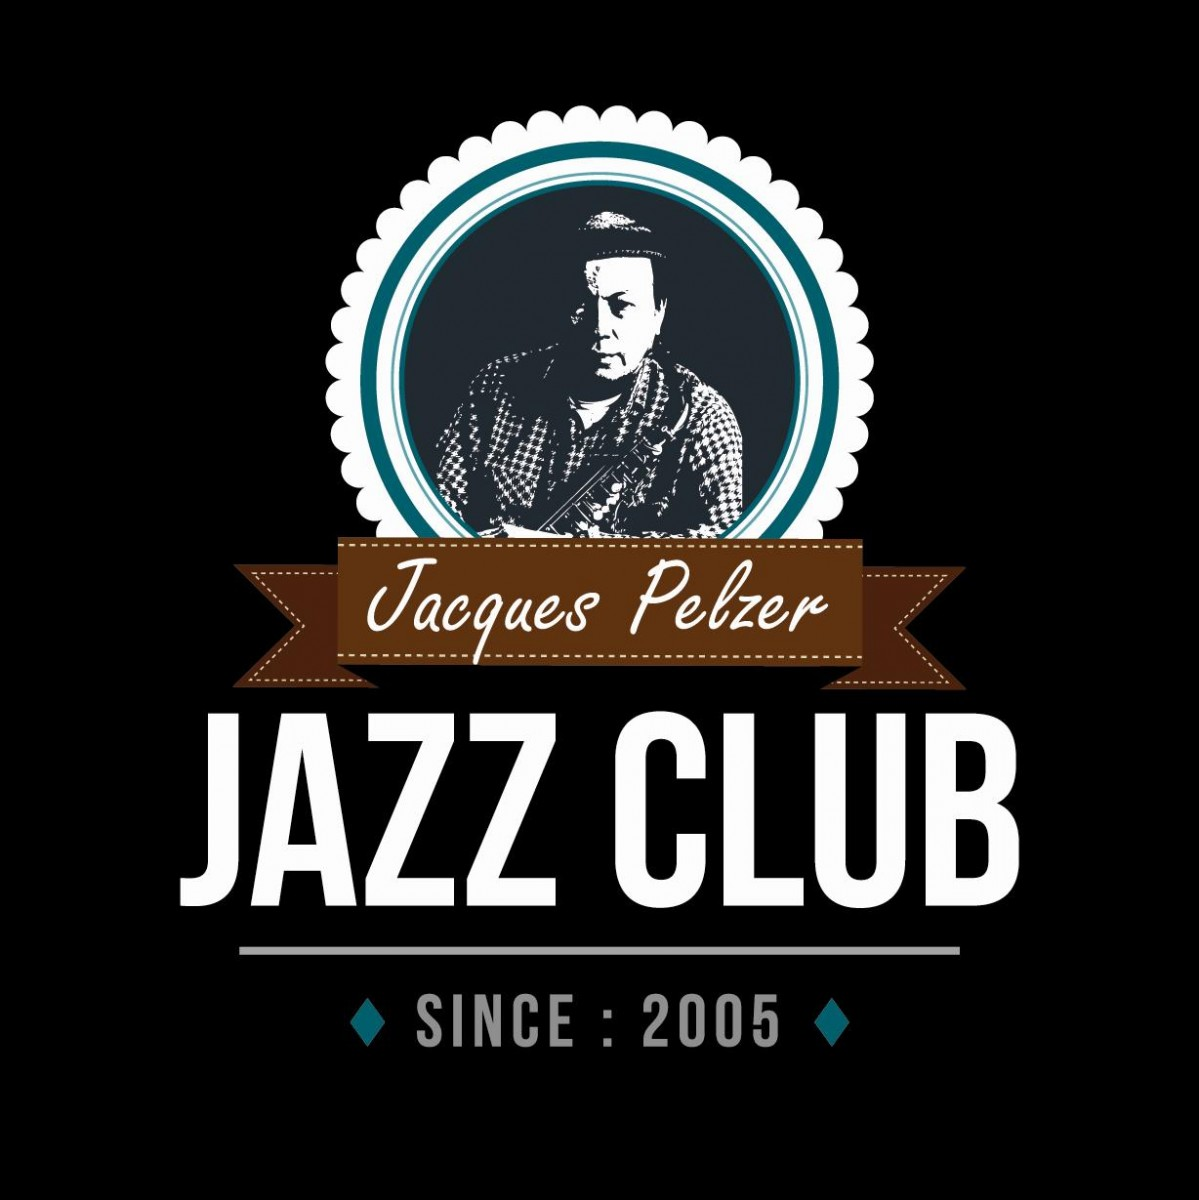 Jacques Pelzer Jazz Club - Liège - New logo Négatif